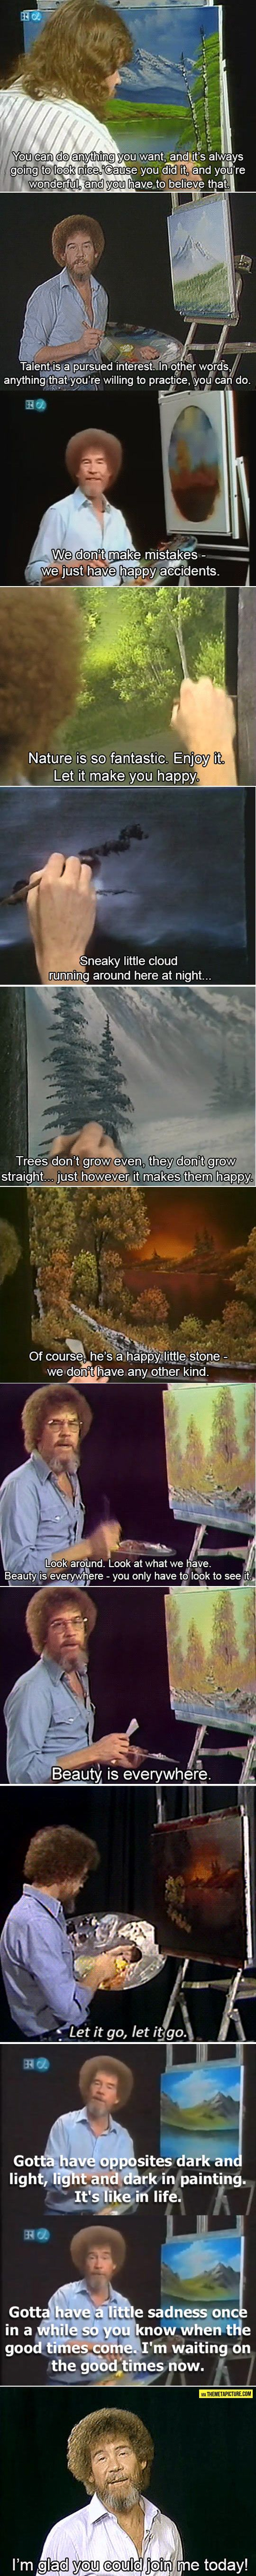 OMG I used to watch his show all the time!! Bob Ross you're awesome!